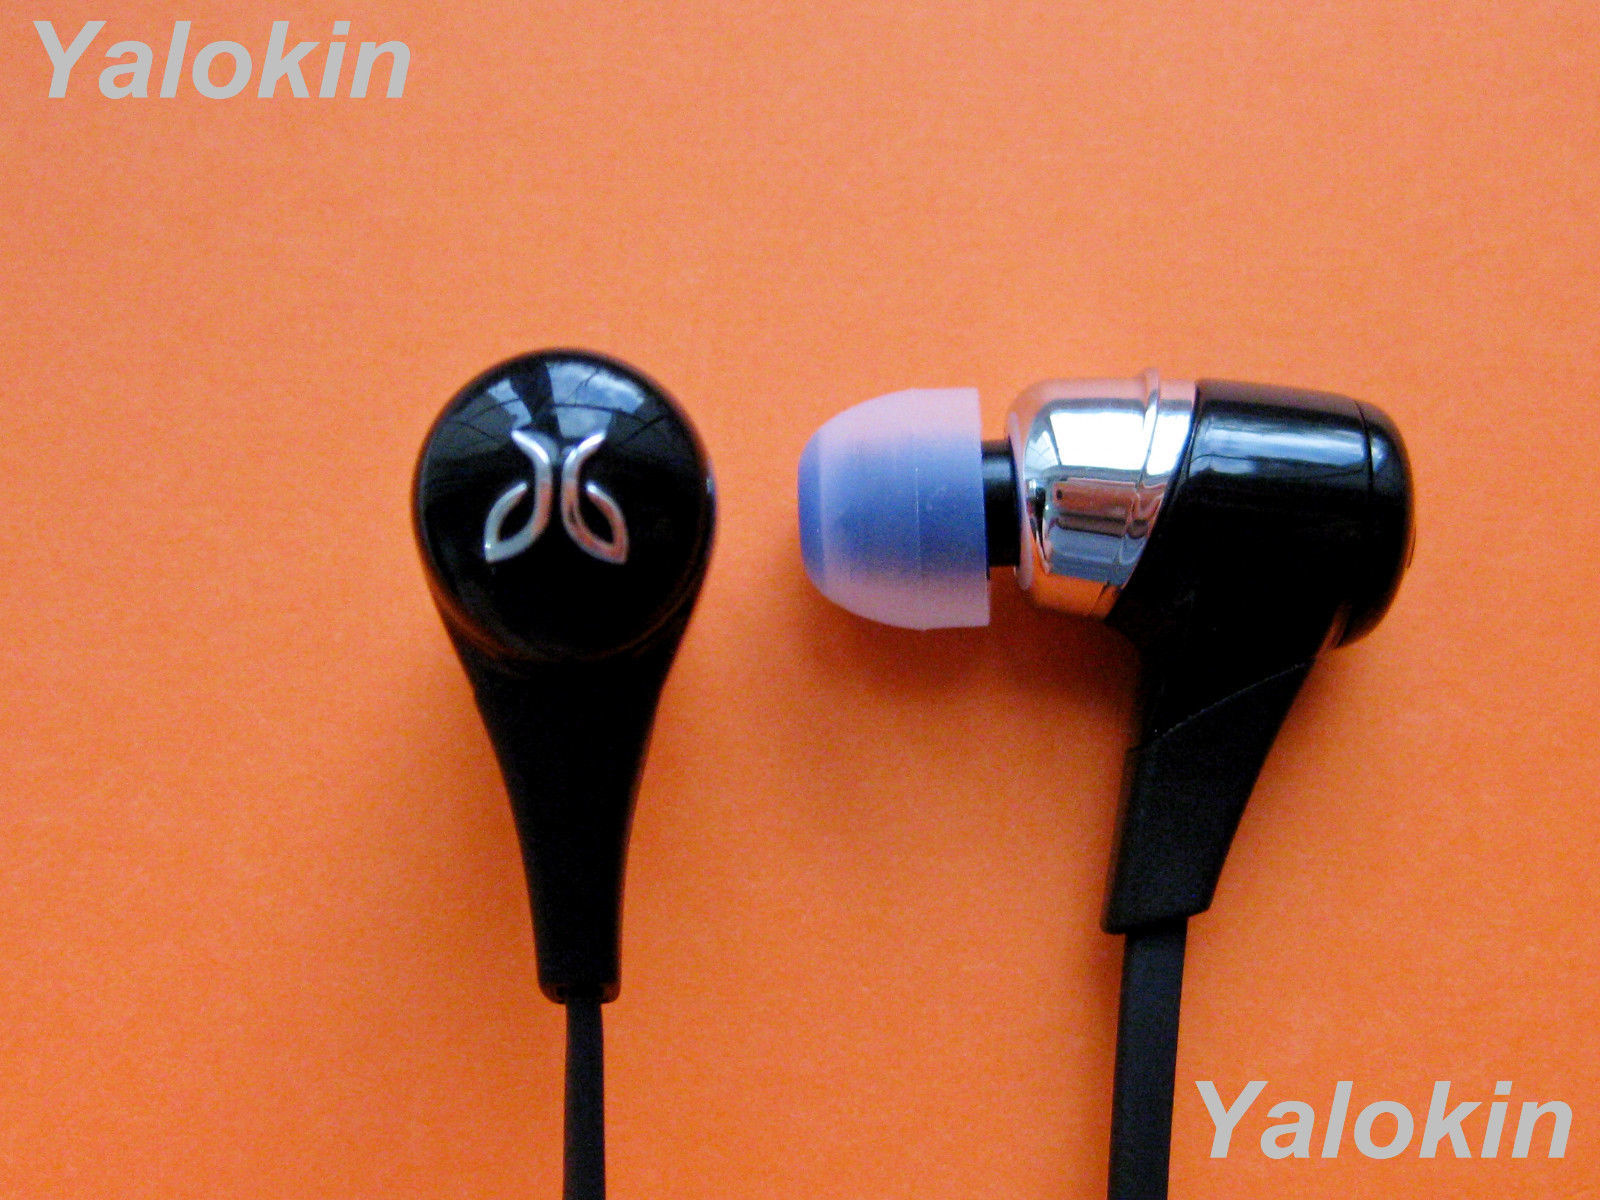 Size NEW 8pcs Medium M C-BL Ear-tips Earbuds Replacement Set for Jaybird X3